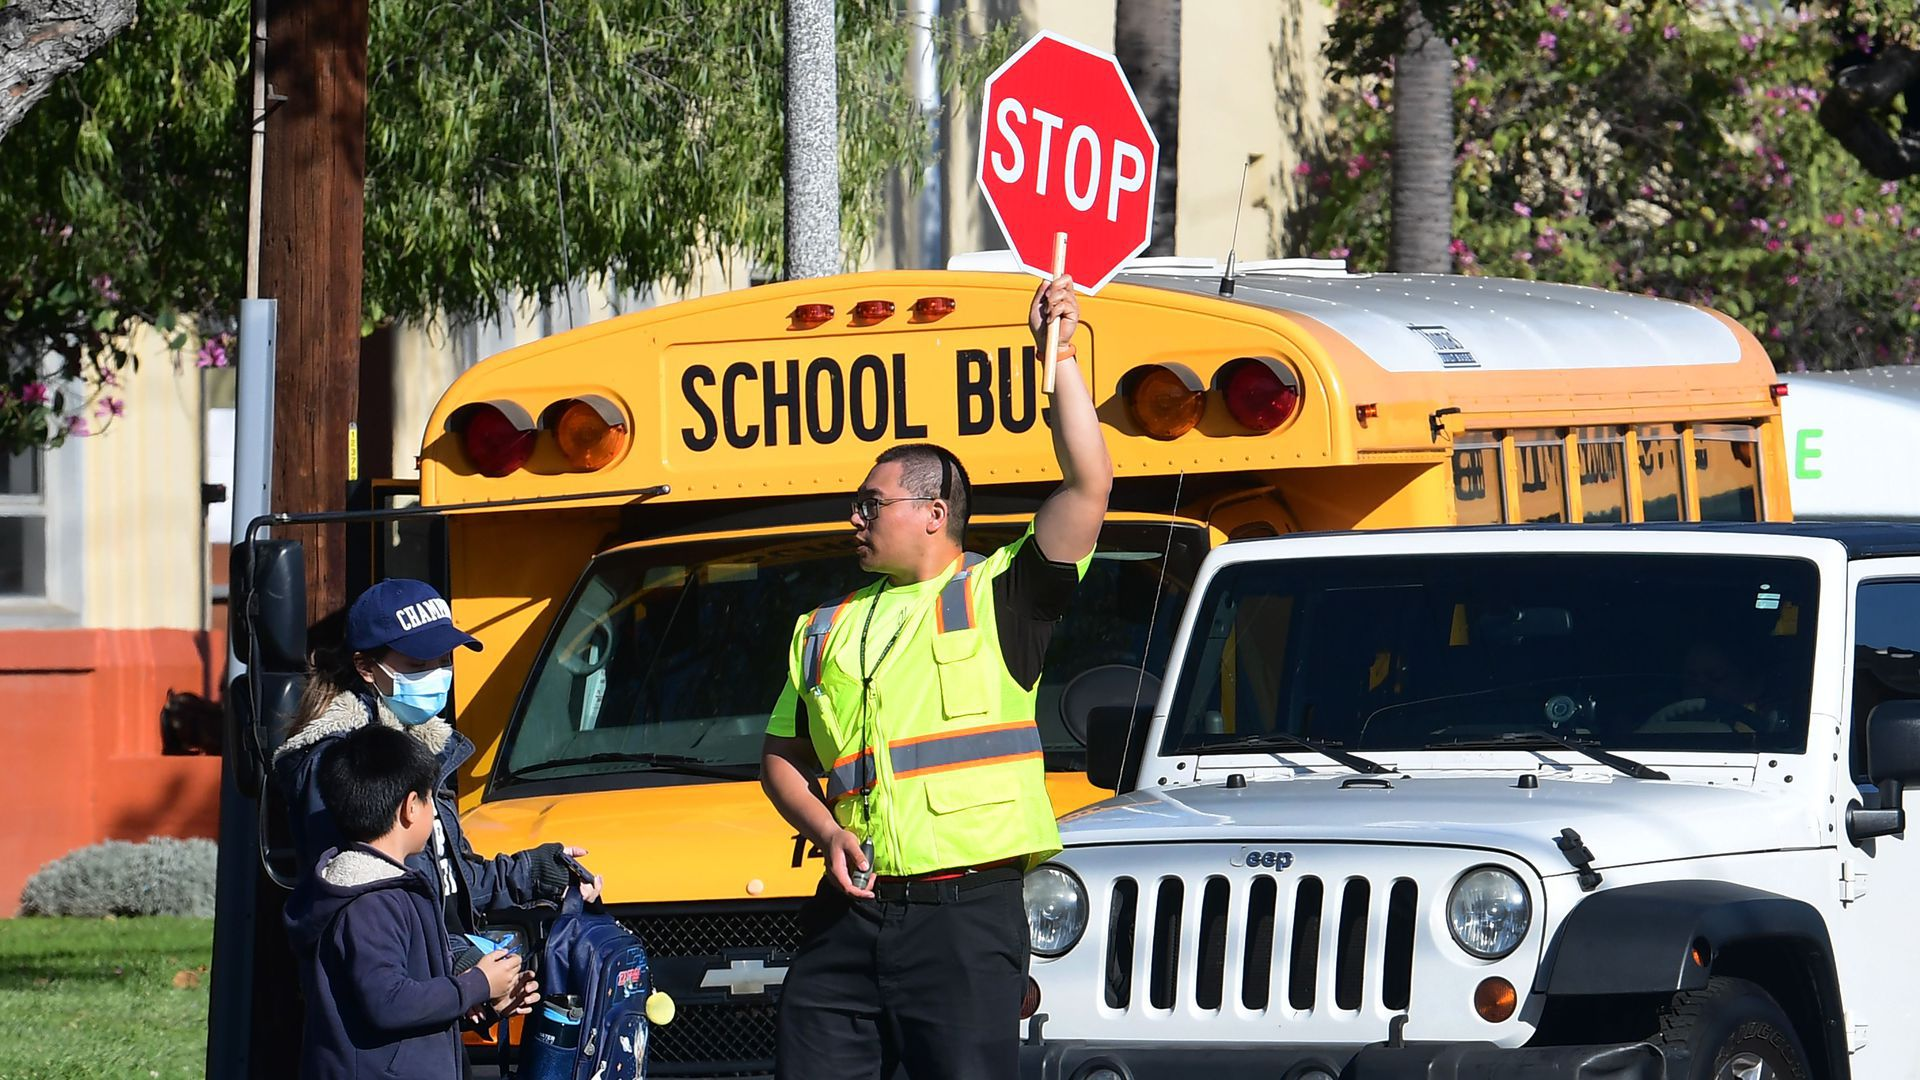 A man in a neon yellow vest holds up a stop sign in front of a school bus.